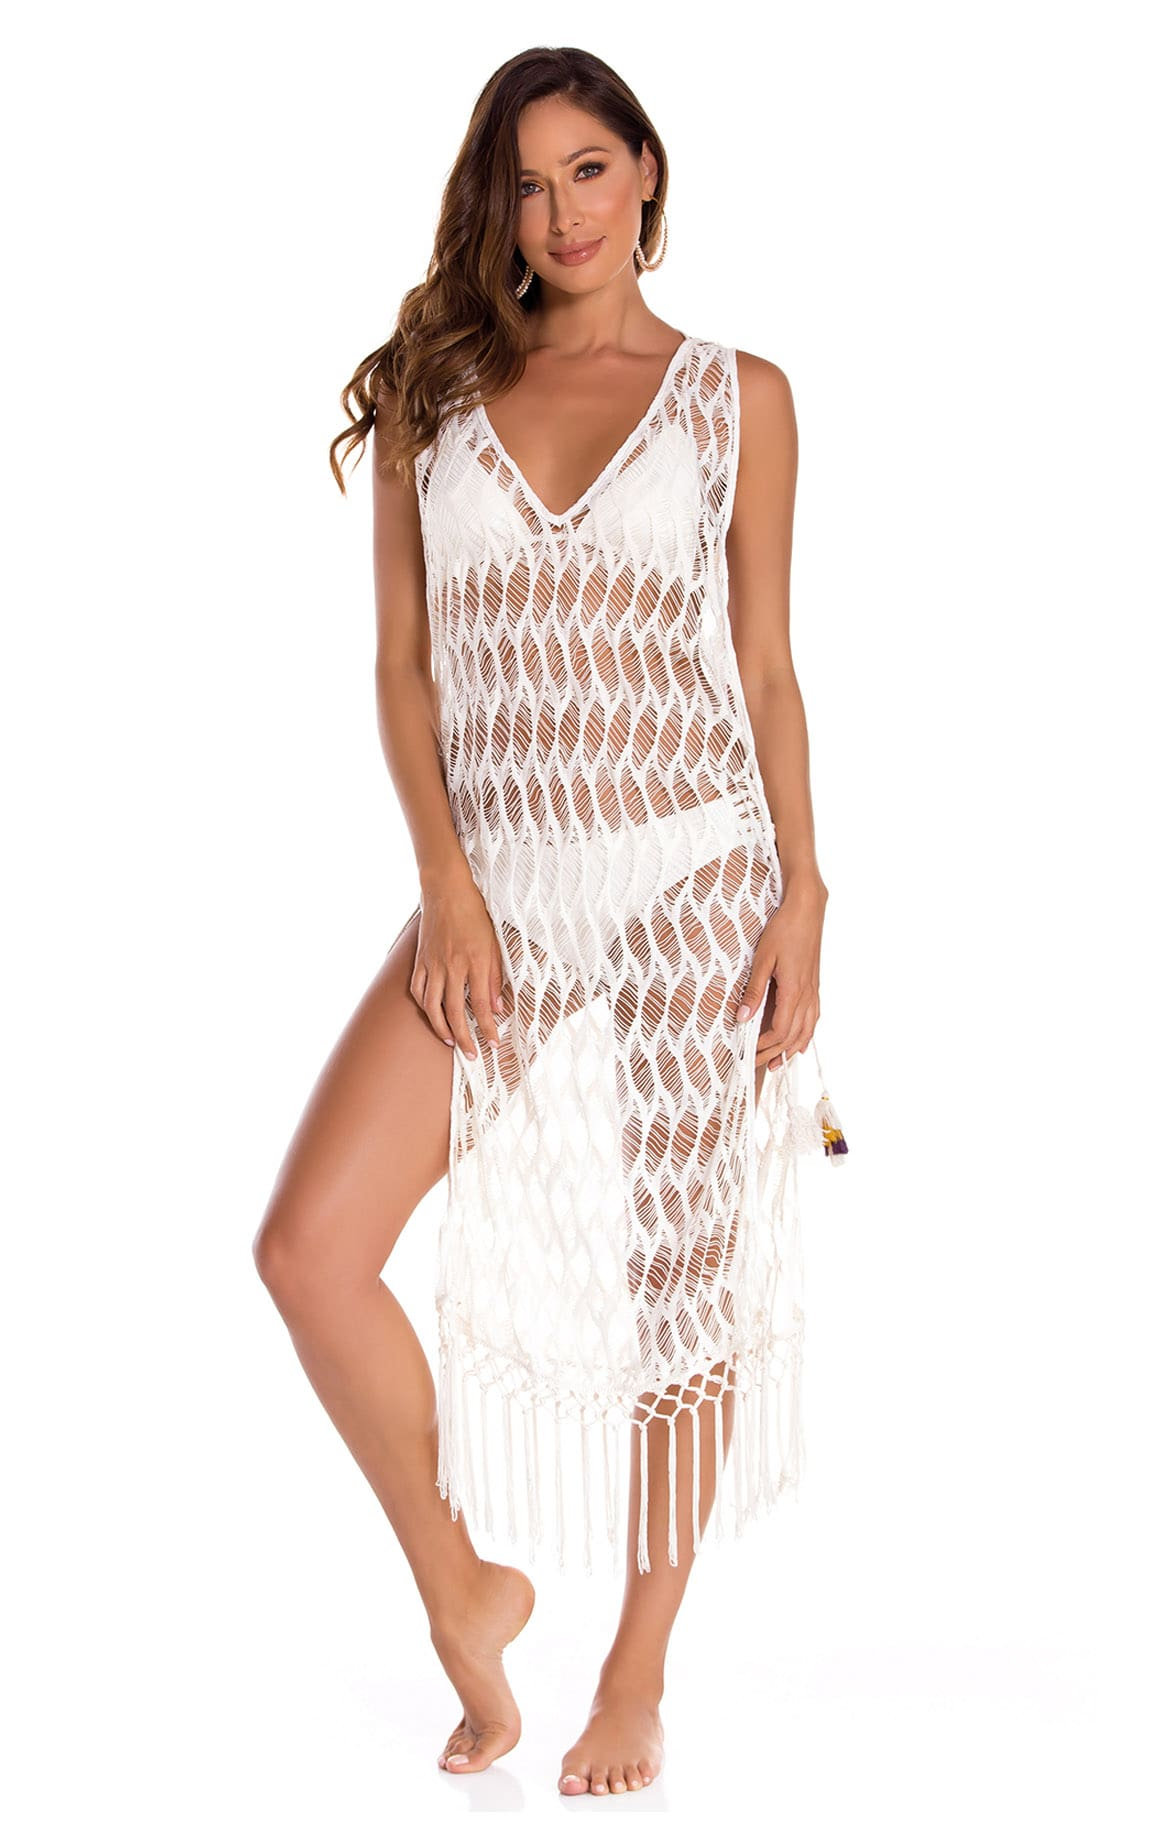 Arezzo Cover Up Handmade Mesh Dress